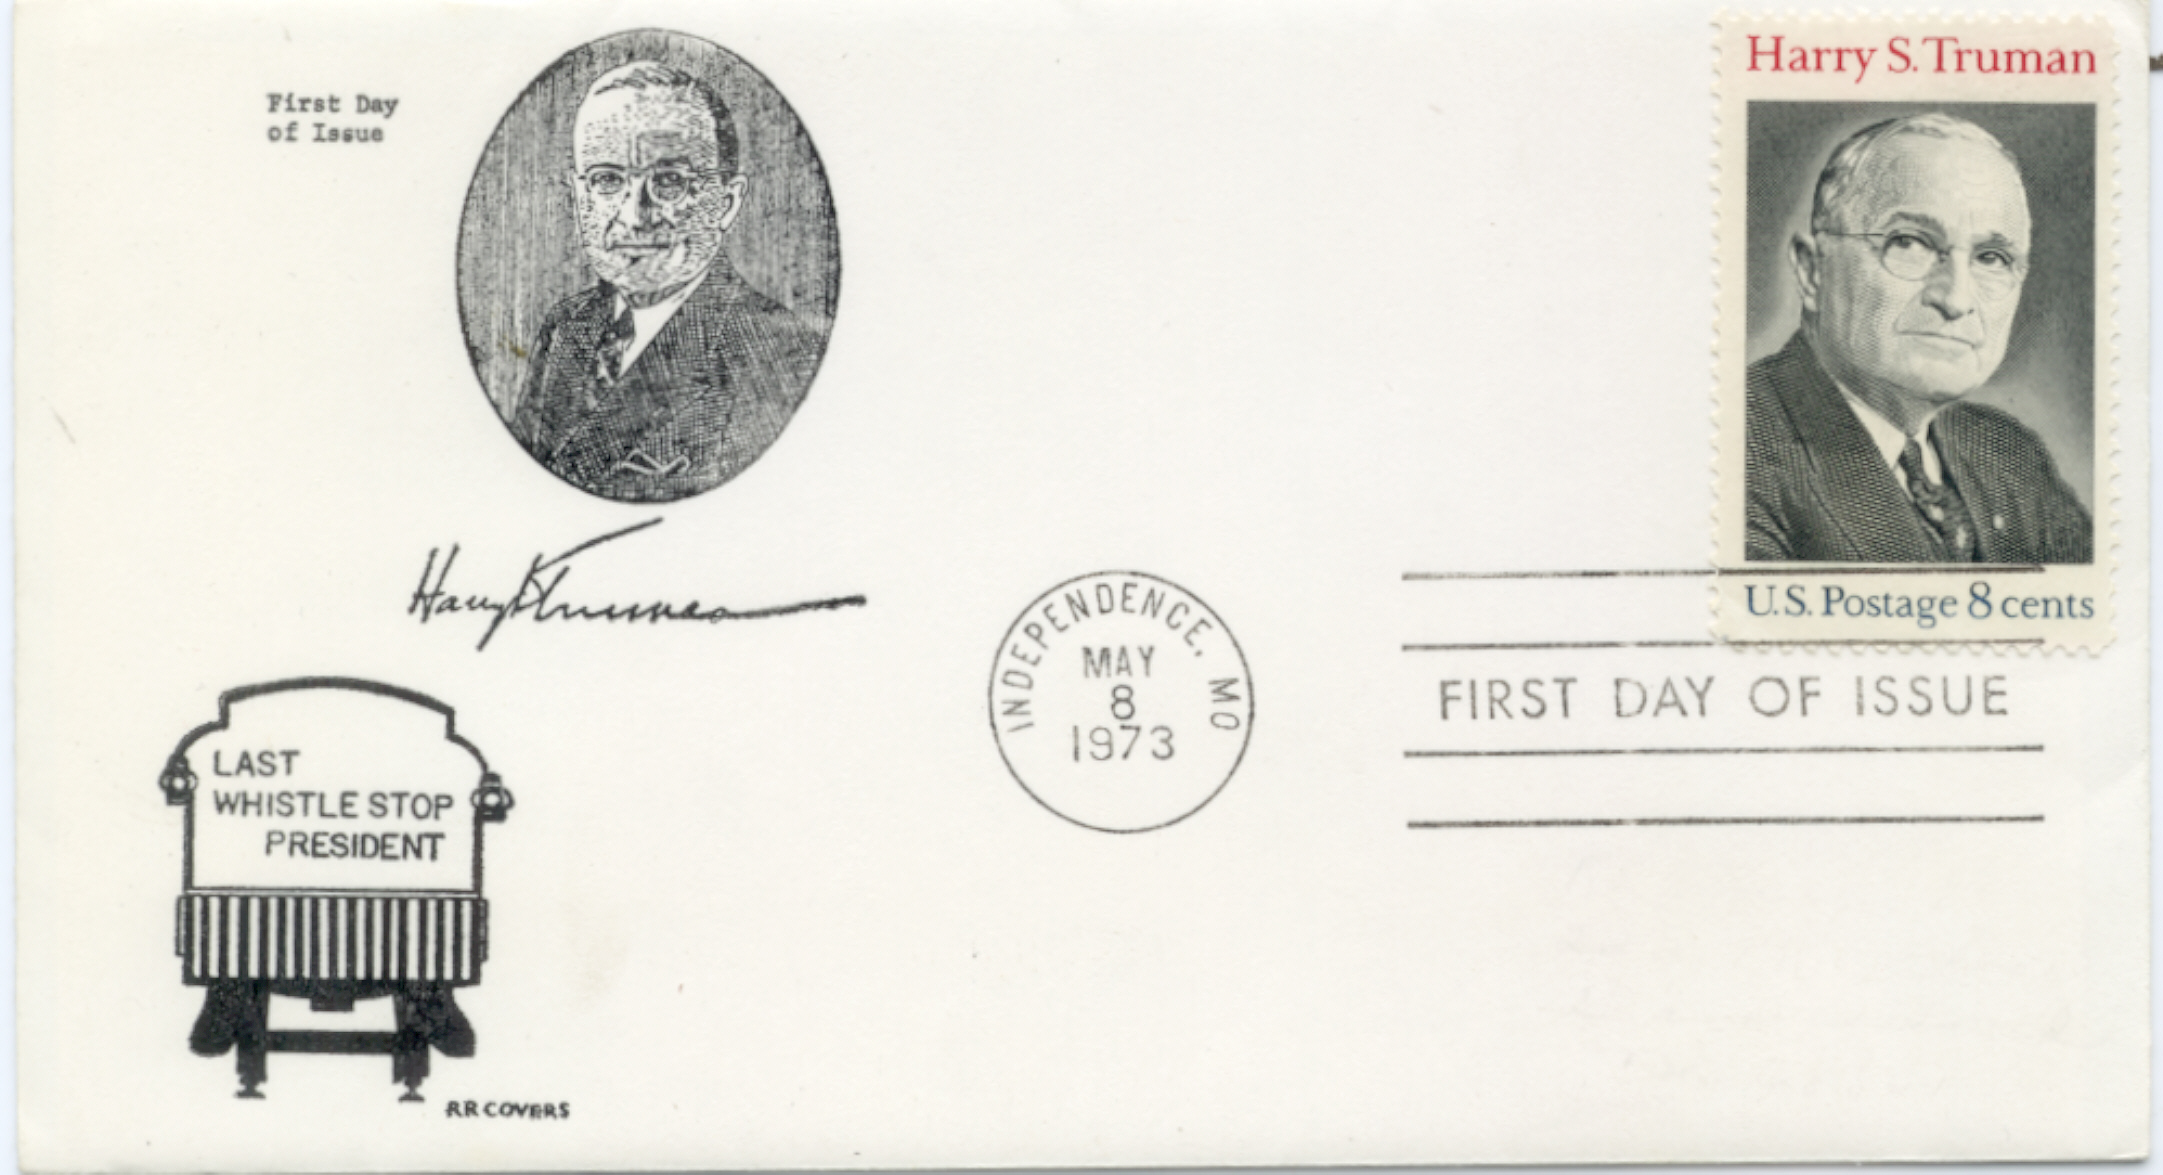 HST Memorial FDC #2